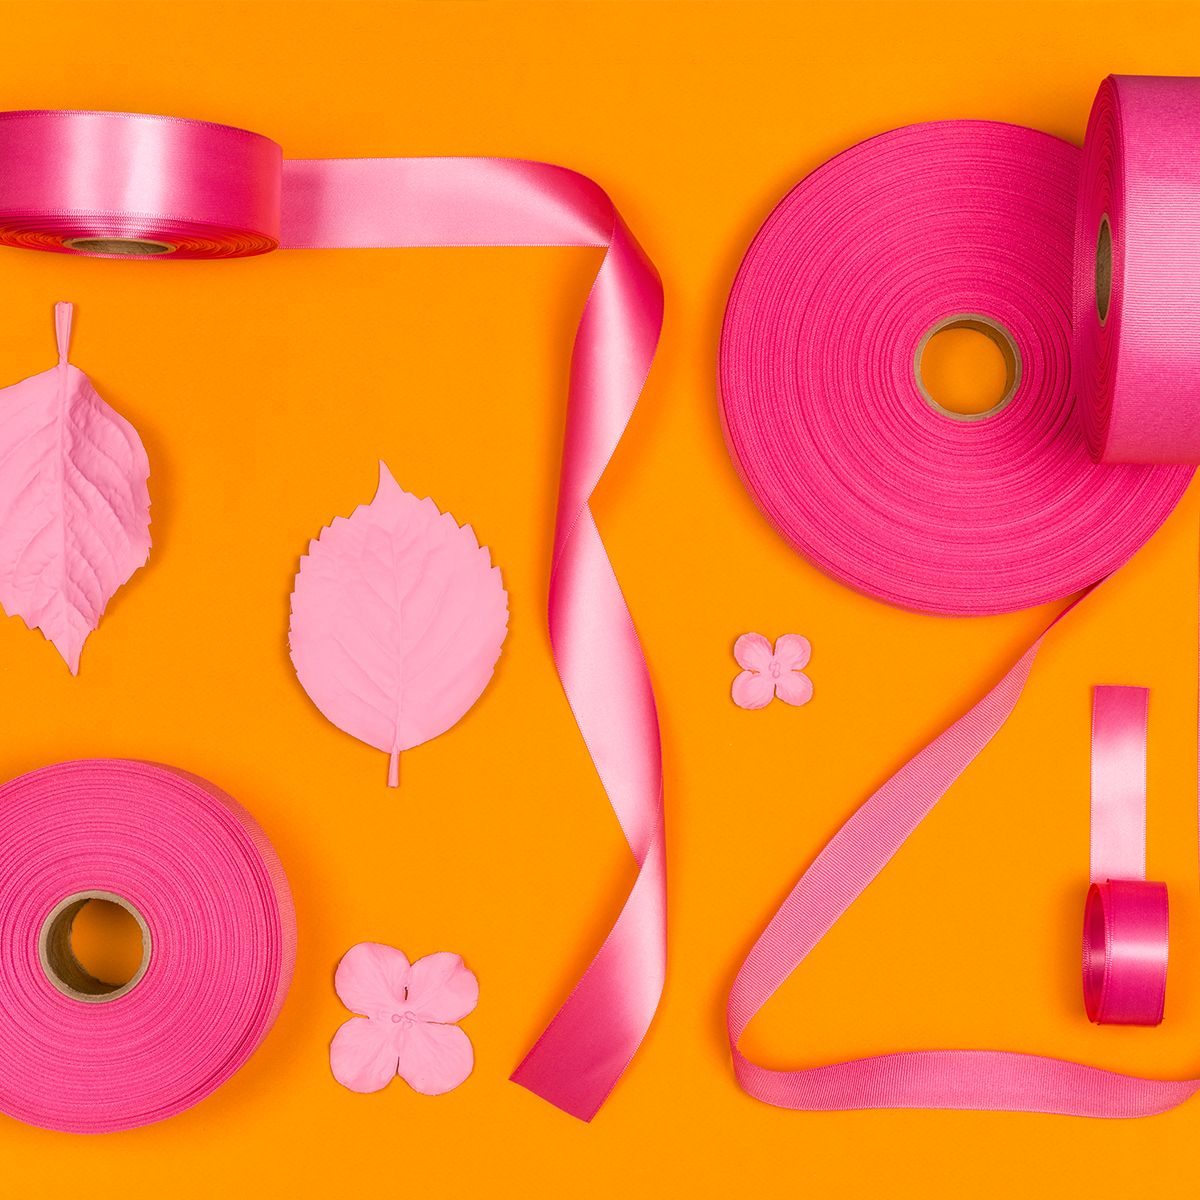 Pink And Orange Is One Of Our Favorite Color Pairs What Are Your Favorite Color Pairs To Use On Your Crafts We A Pink And Orange Favorite Color Color Schemes